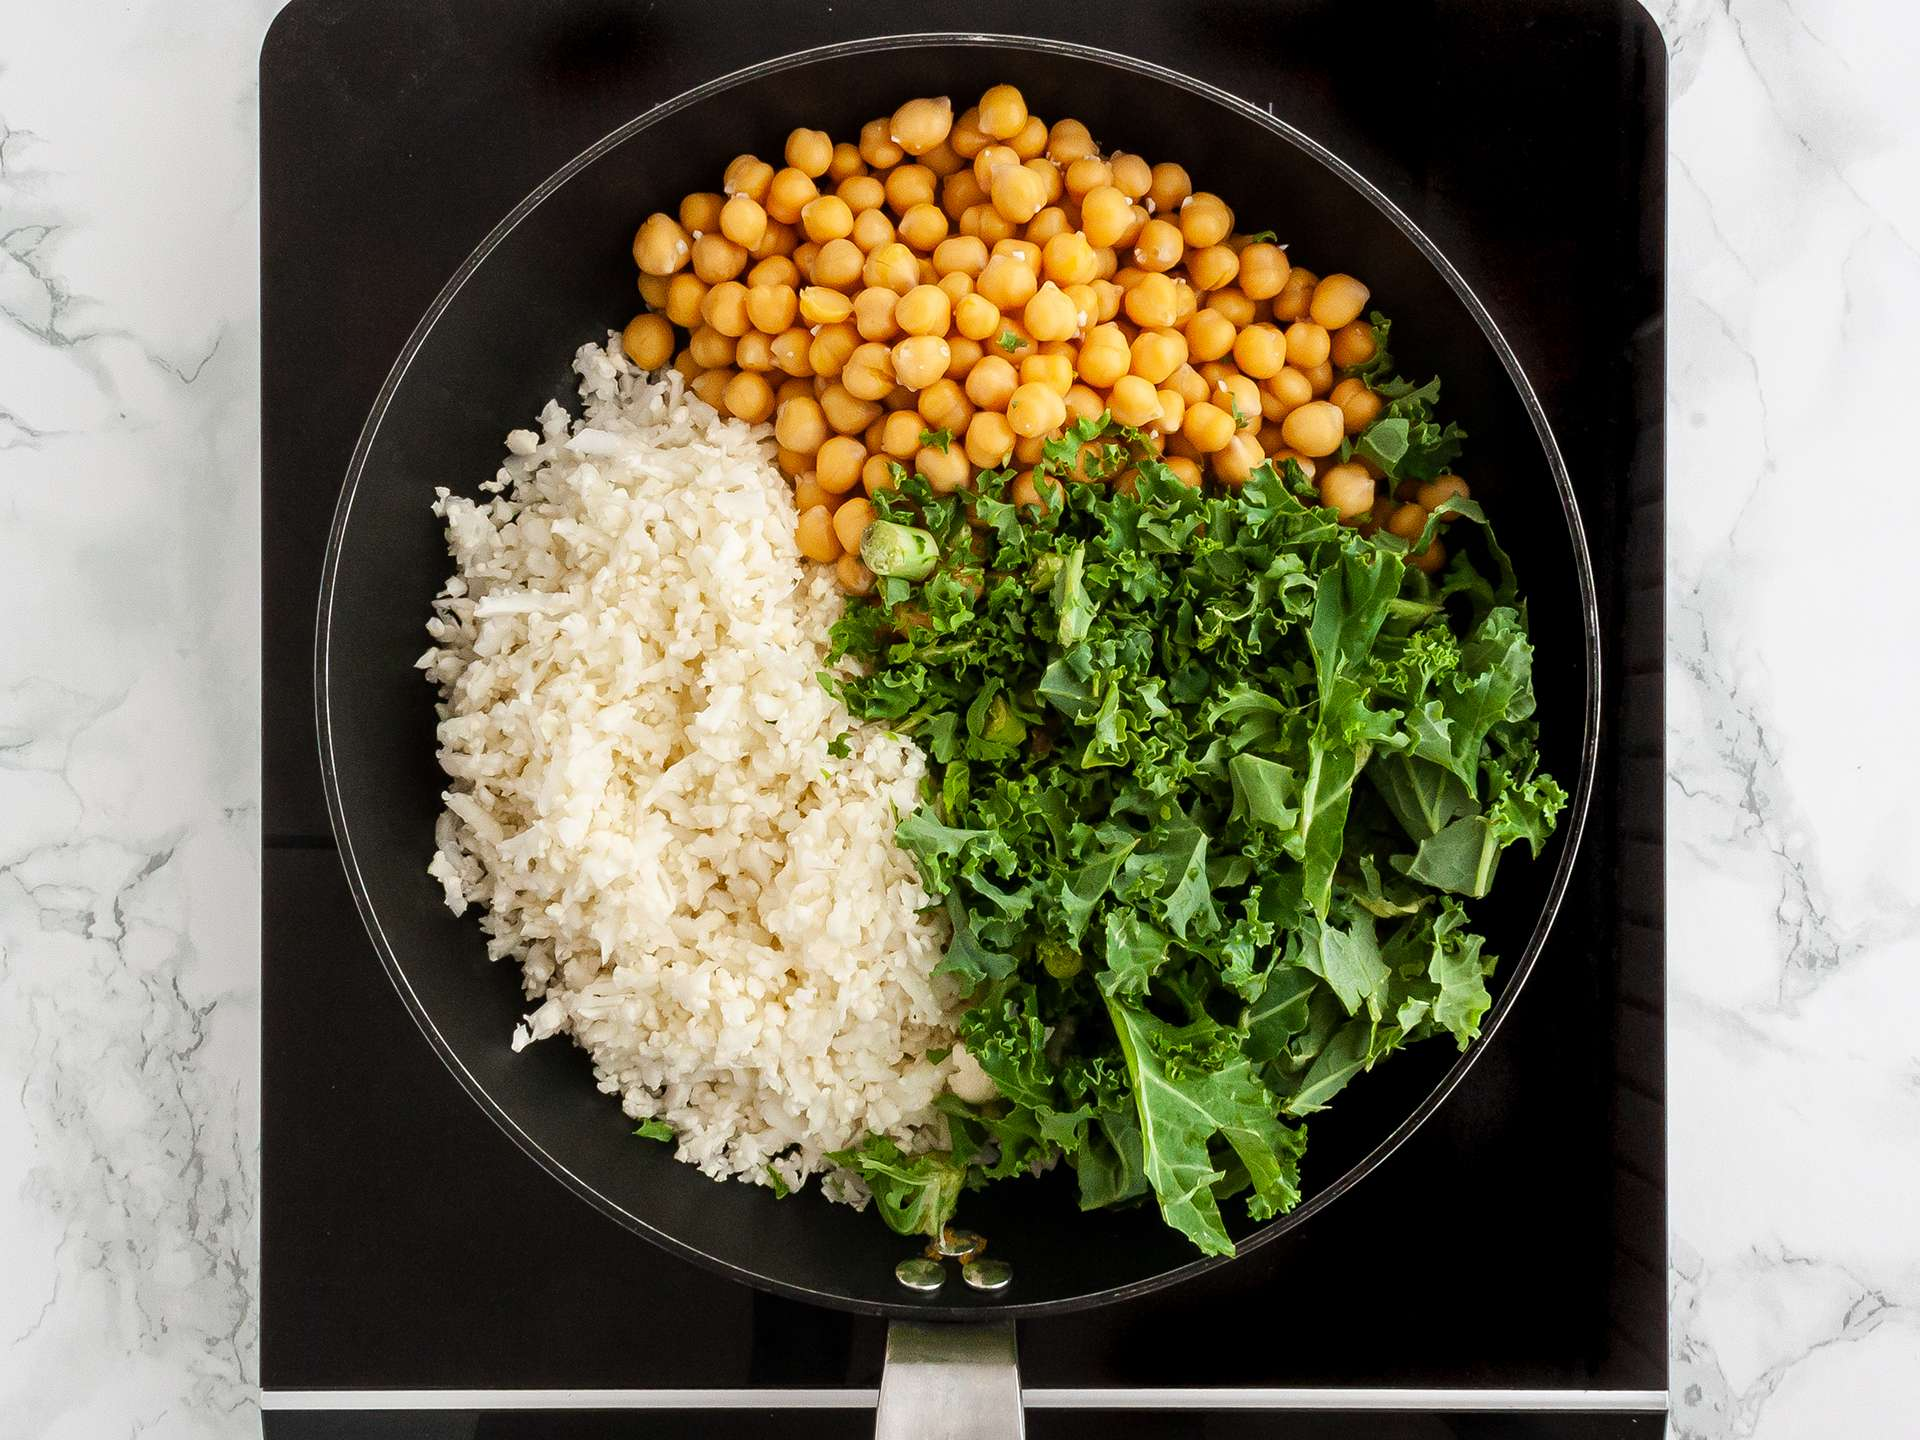 Cauliflower rice, kale, chickpeas cooking in a pan